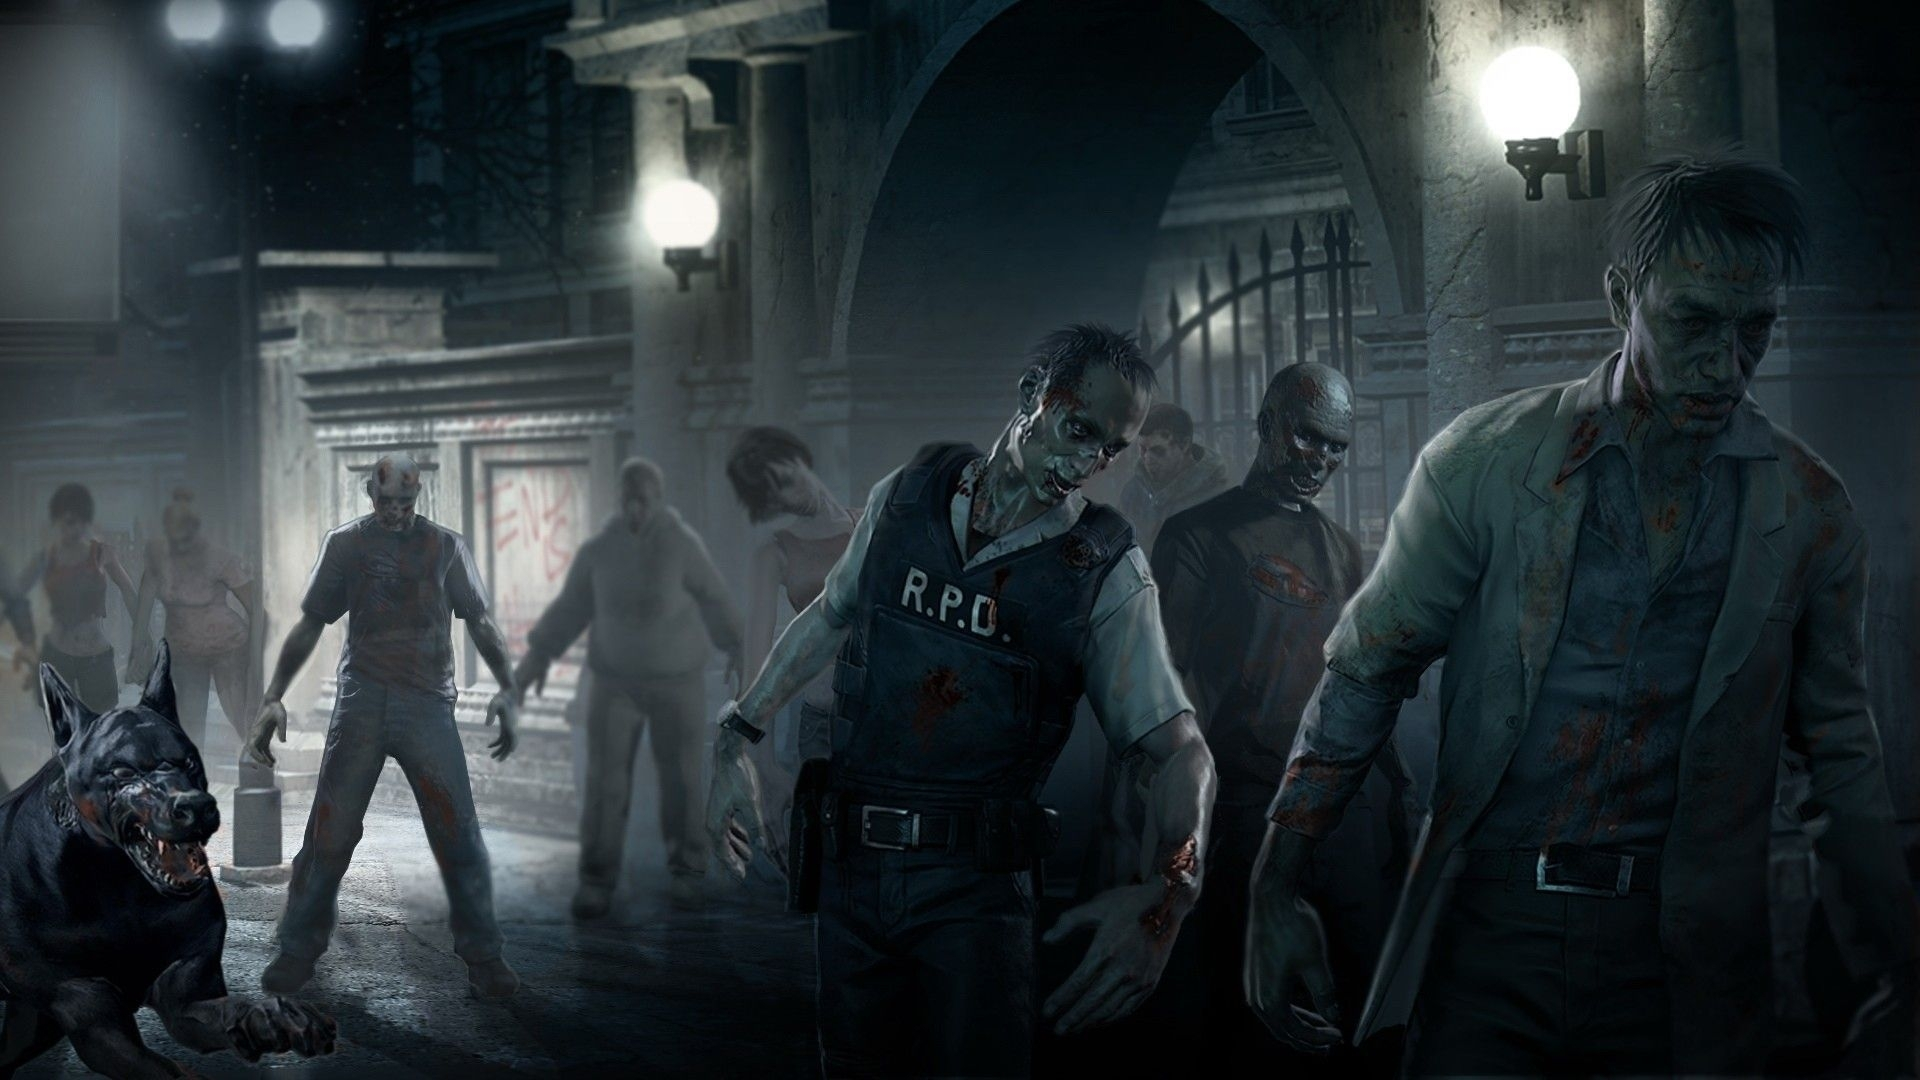 zombie apocalypse wallpapers - wallpaper cave